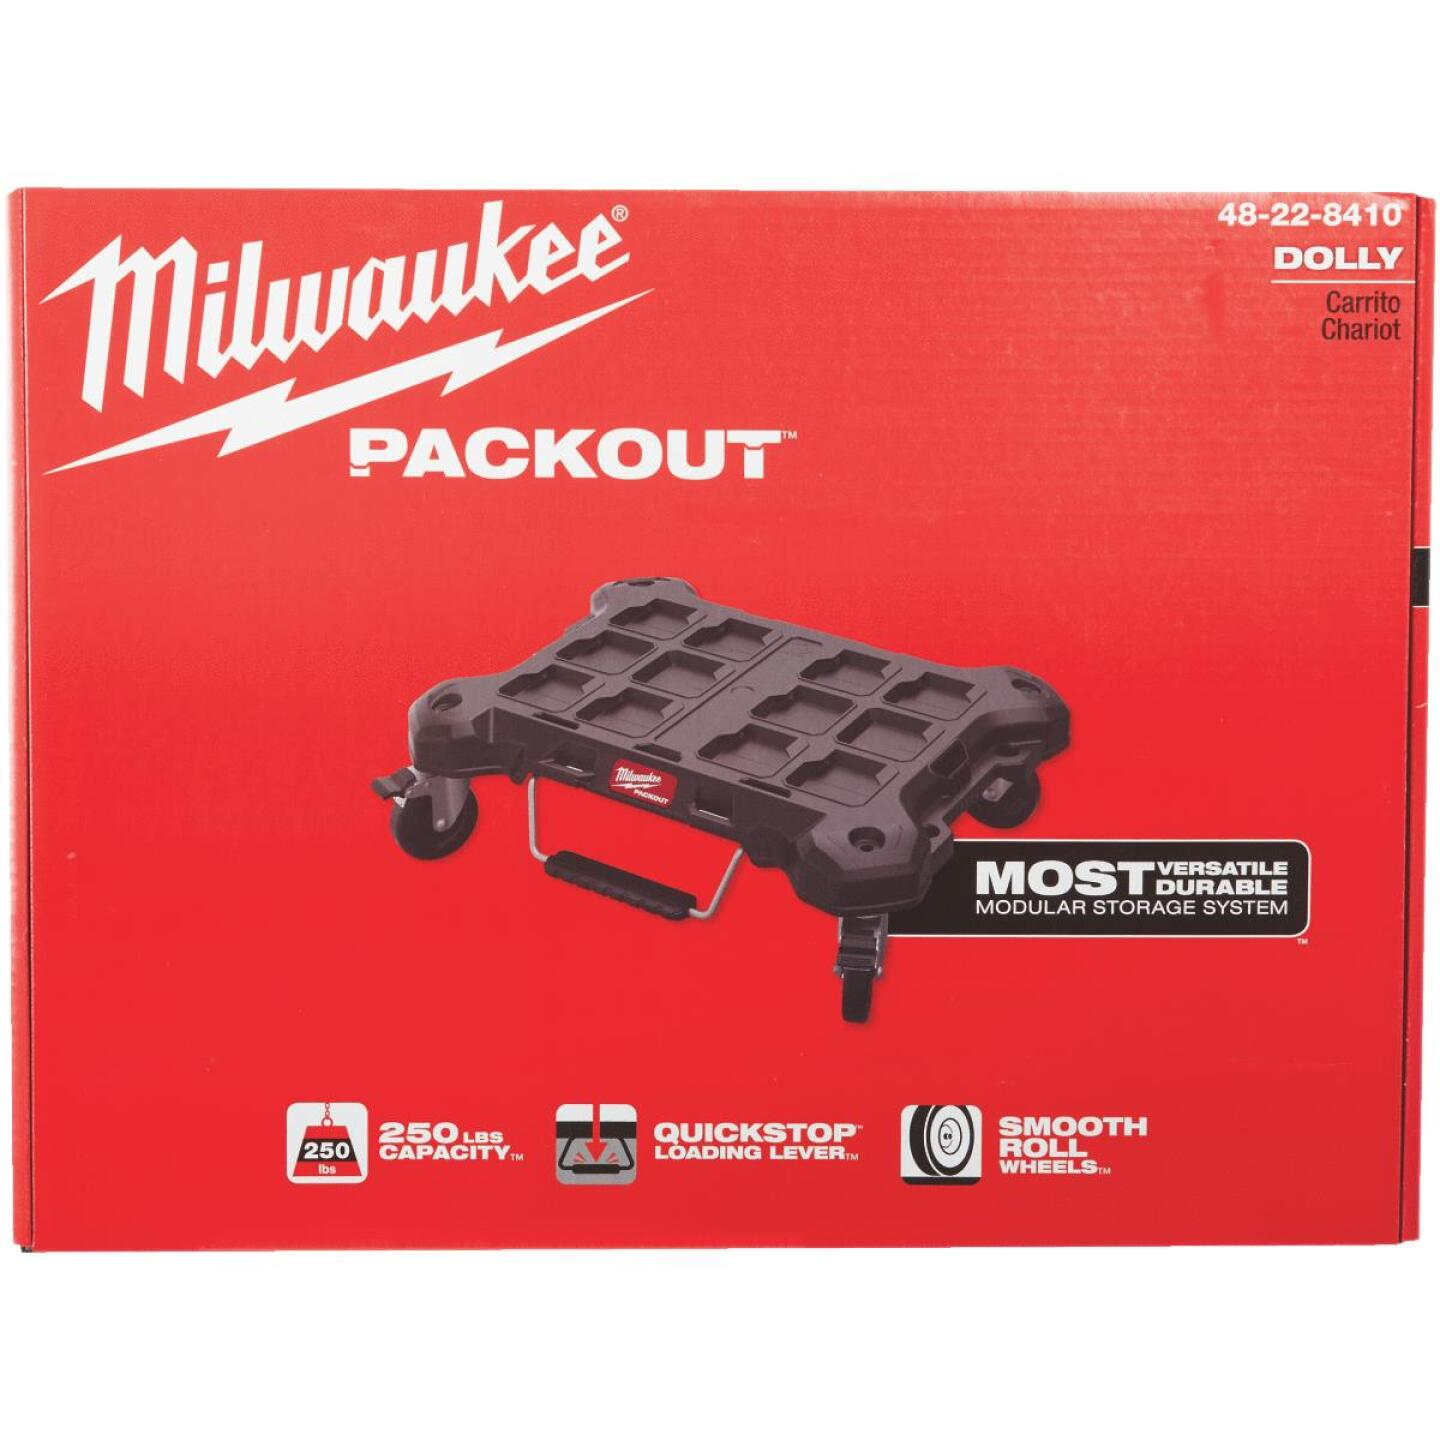 Milwaukee PACKOUT 18.8 In. W x 24.4 In. L Platform Cart, 250 Lb. Capacity Image 6